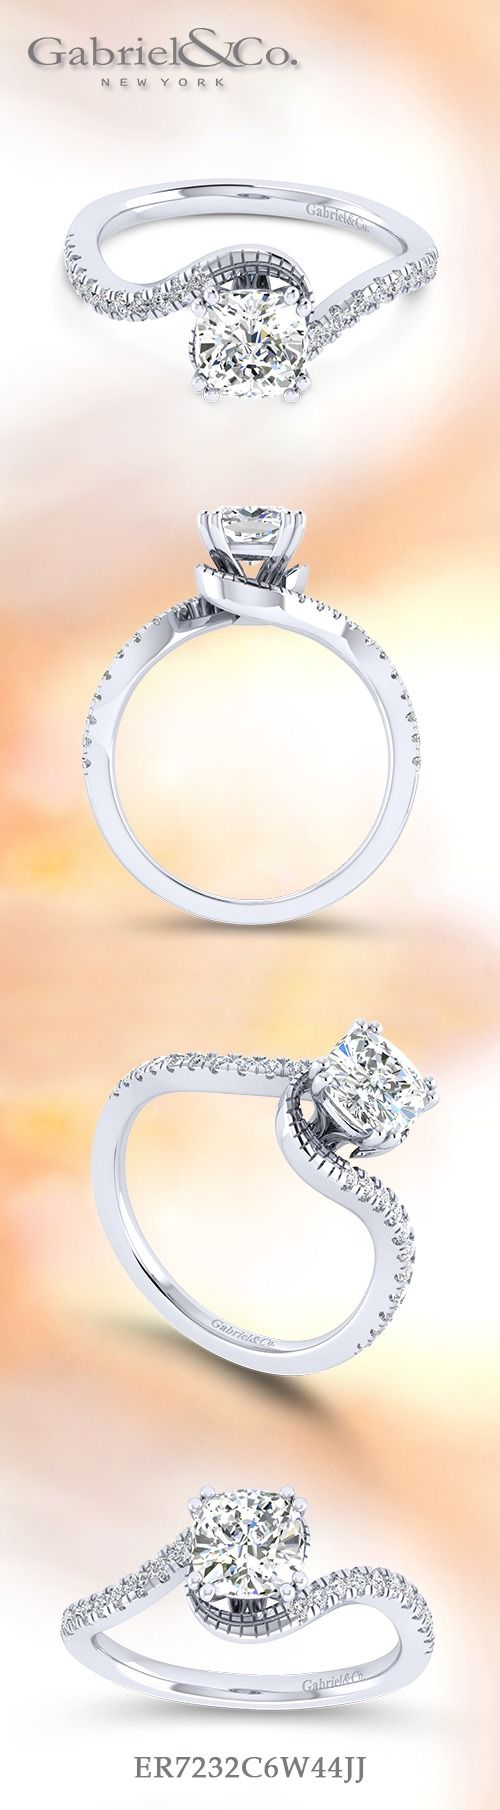 Gabriel NY - Voted #1 Most Preferred Fine Jewelry and Bridal Brand. 14k White Gold Cushion Cut Bypass  Engagement Ring